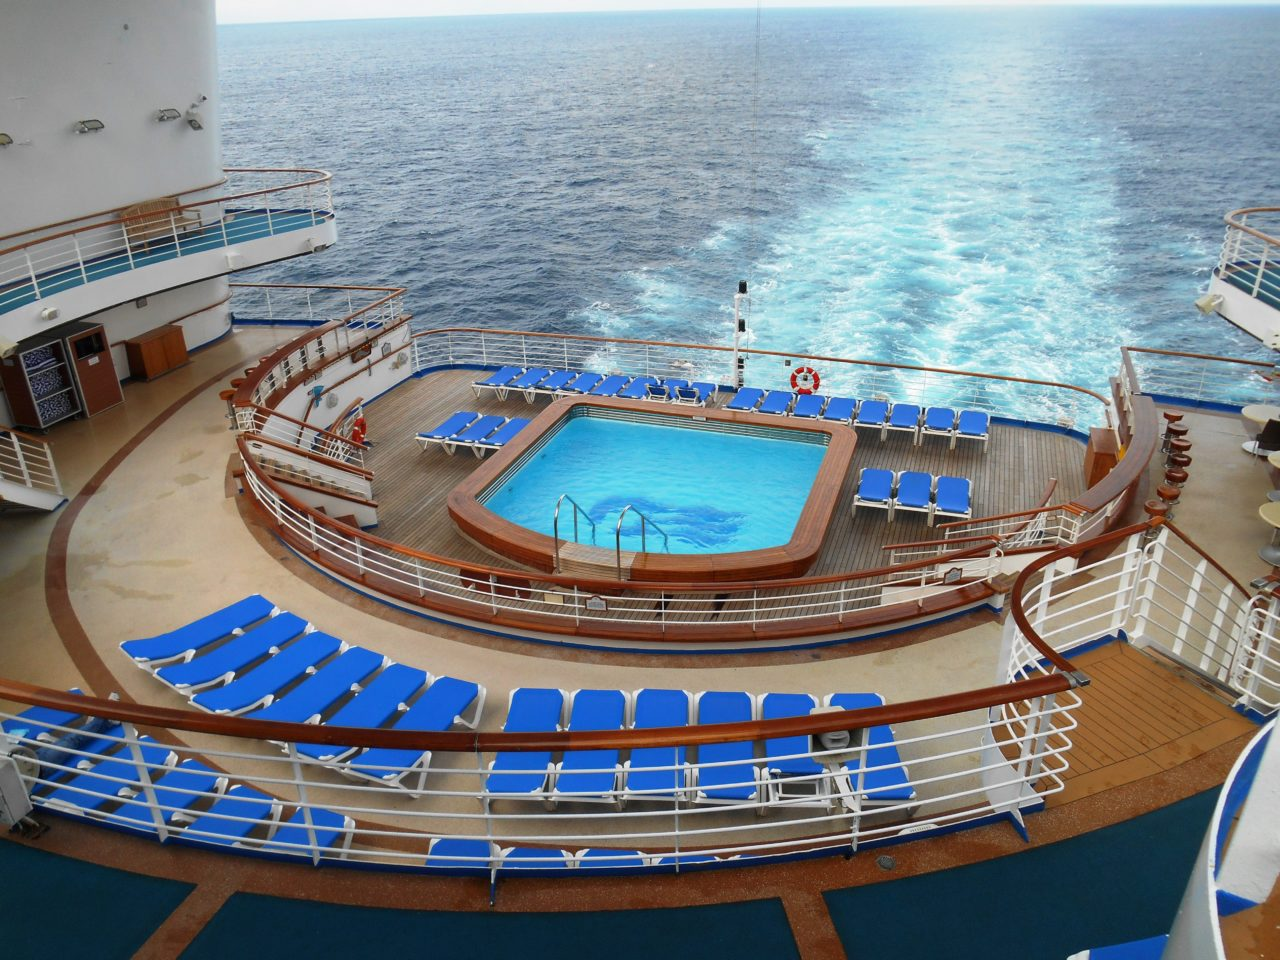 Aboard the Star Princess cruise ship during our Alaska Cruise with Princess Cruises